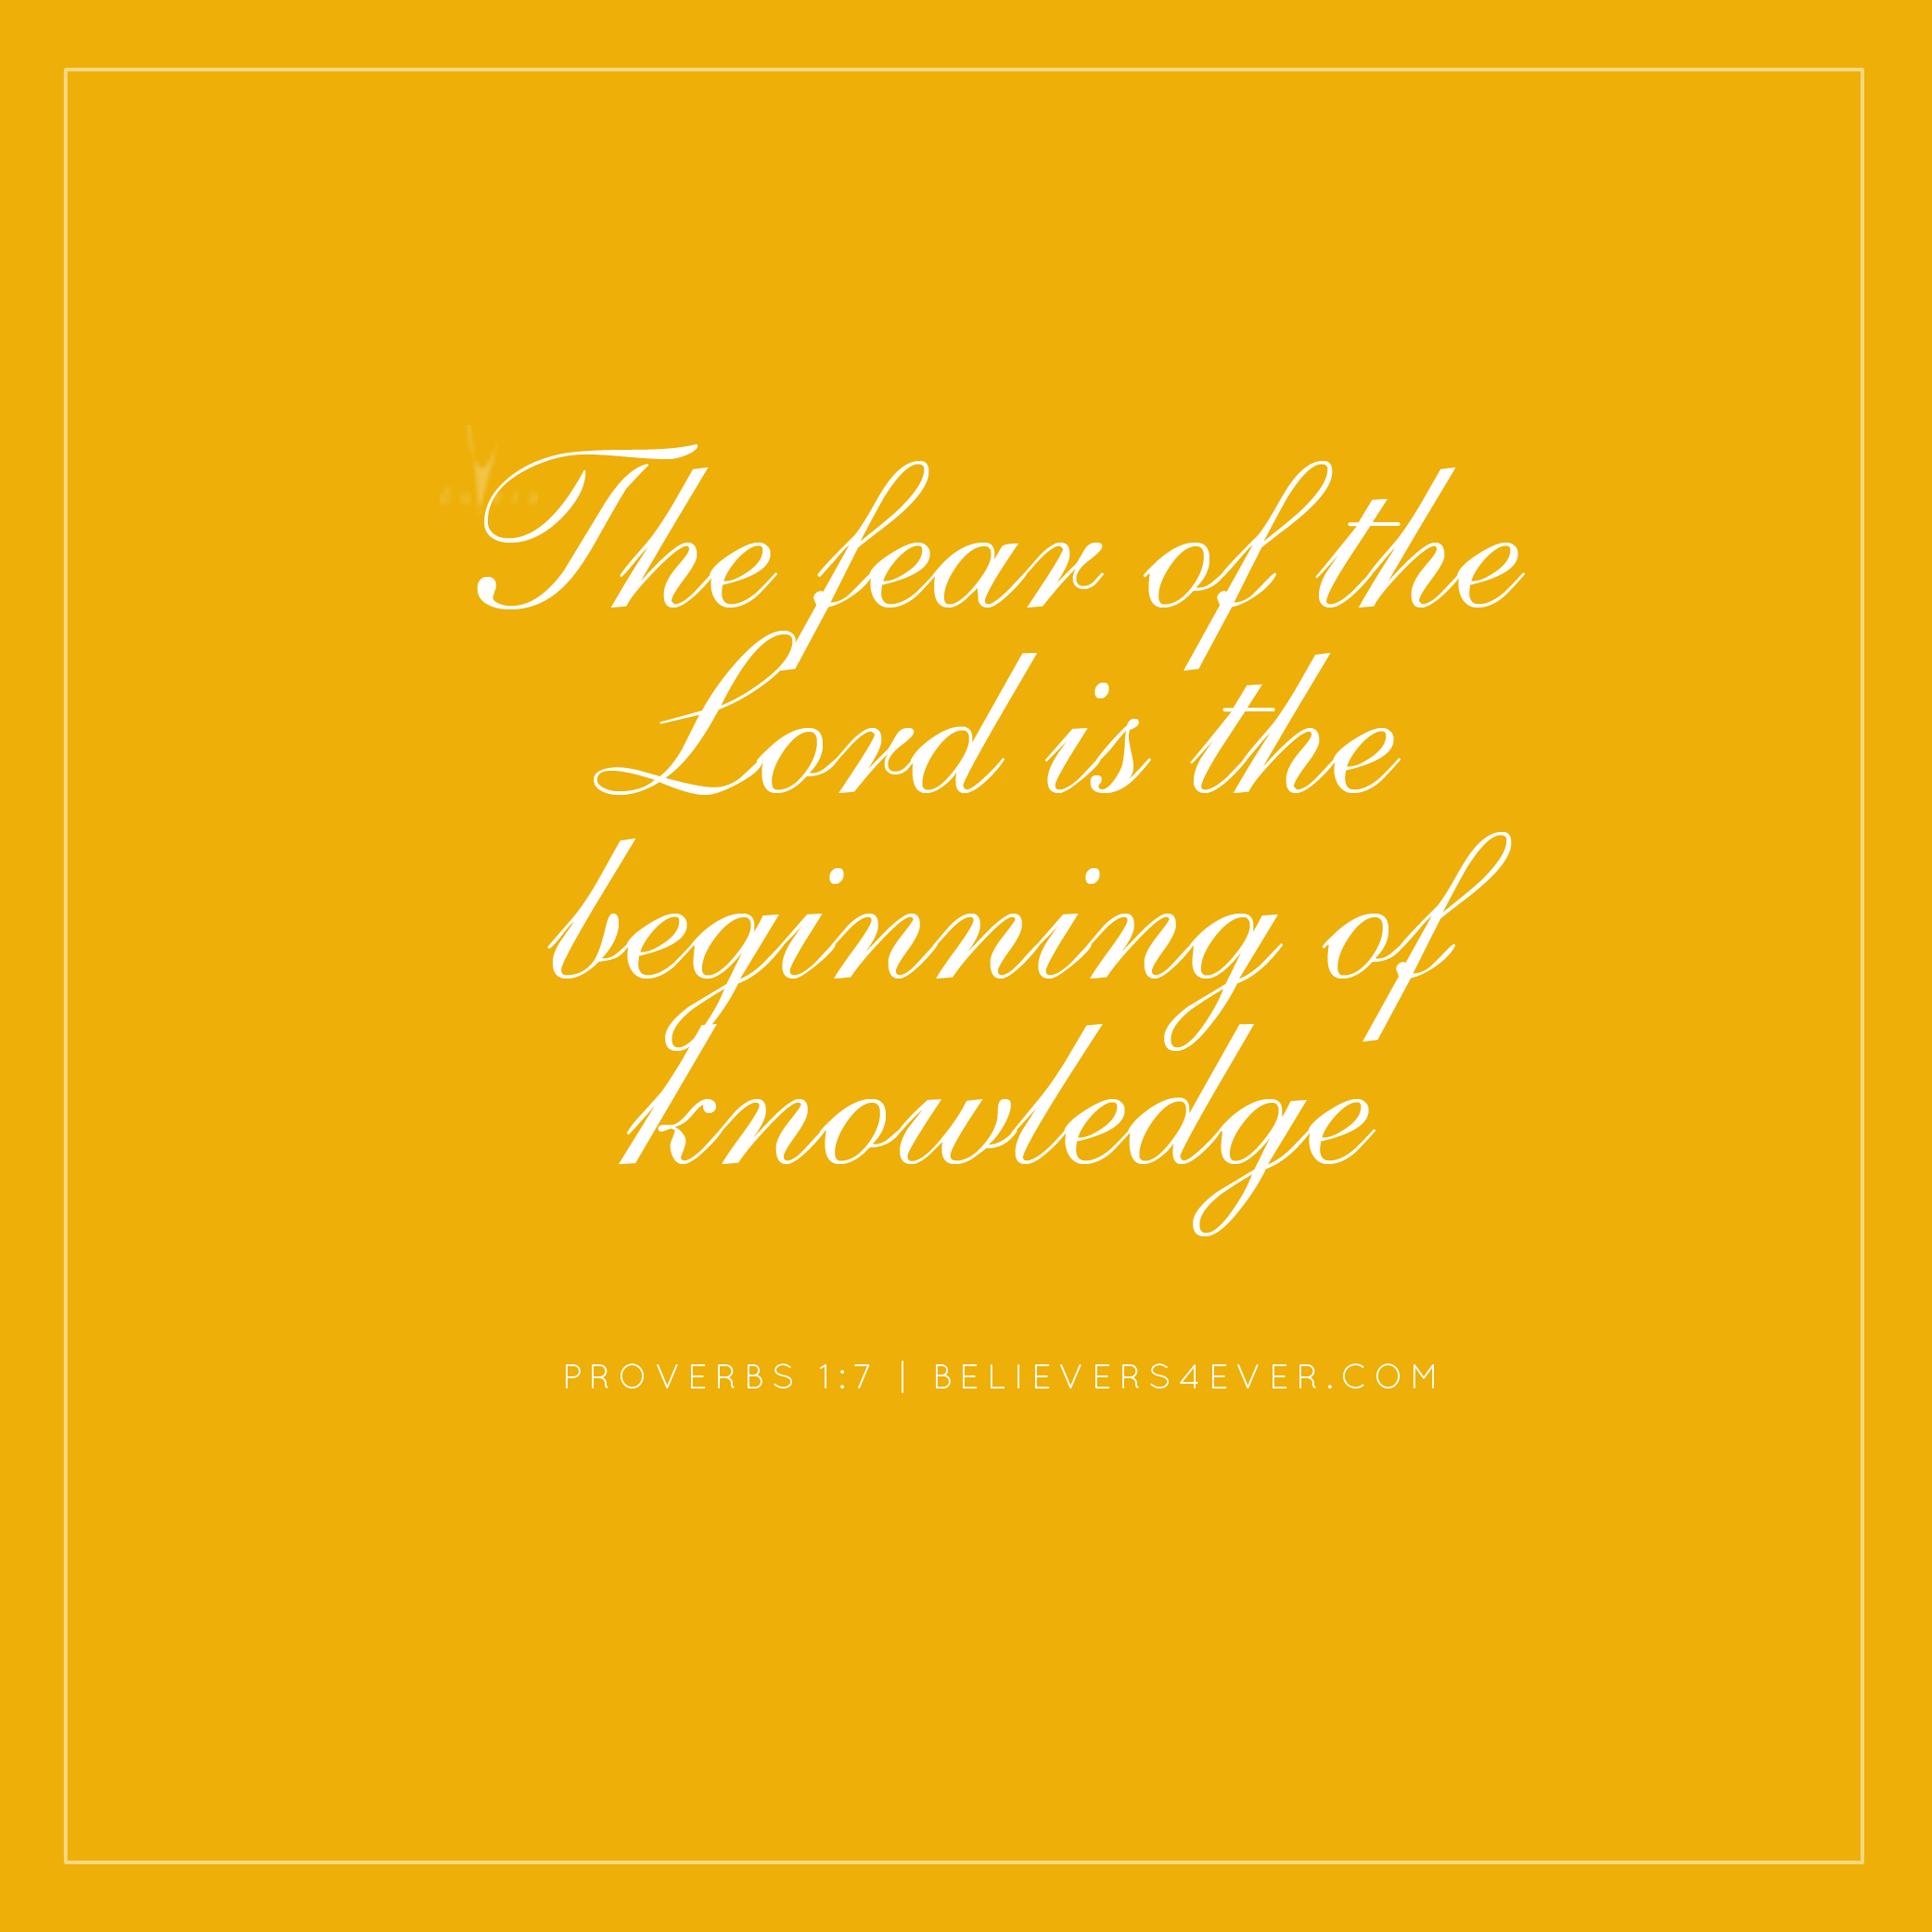 The fear of the Lord, proverbs 1:7